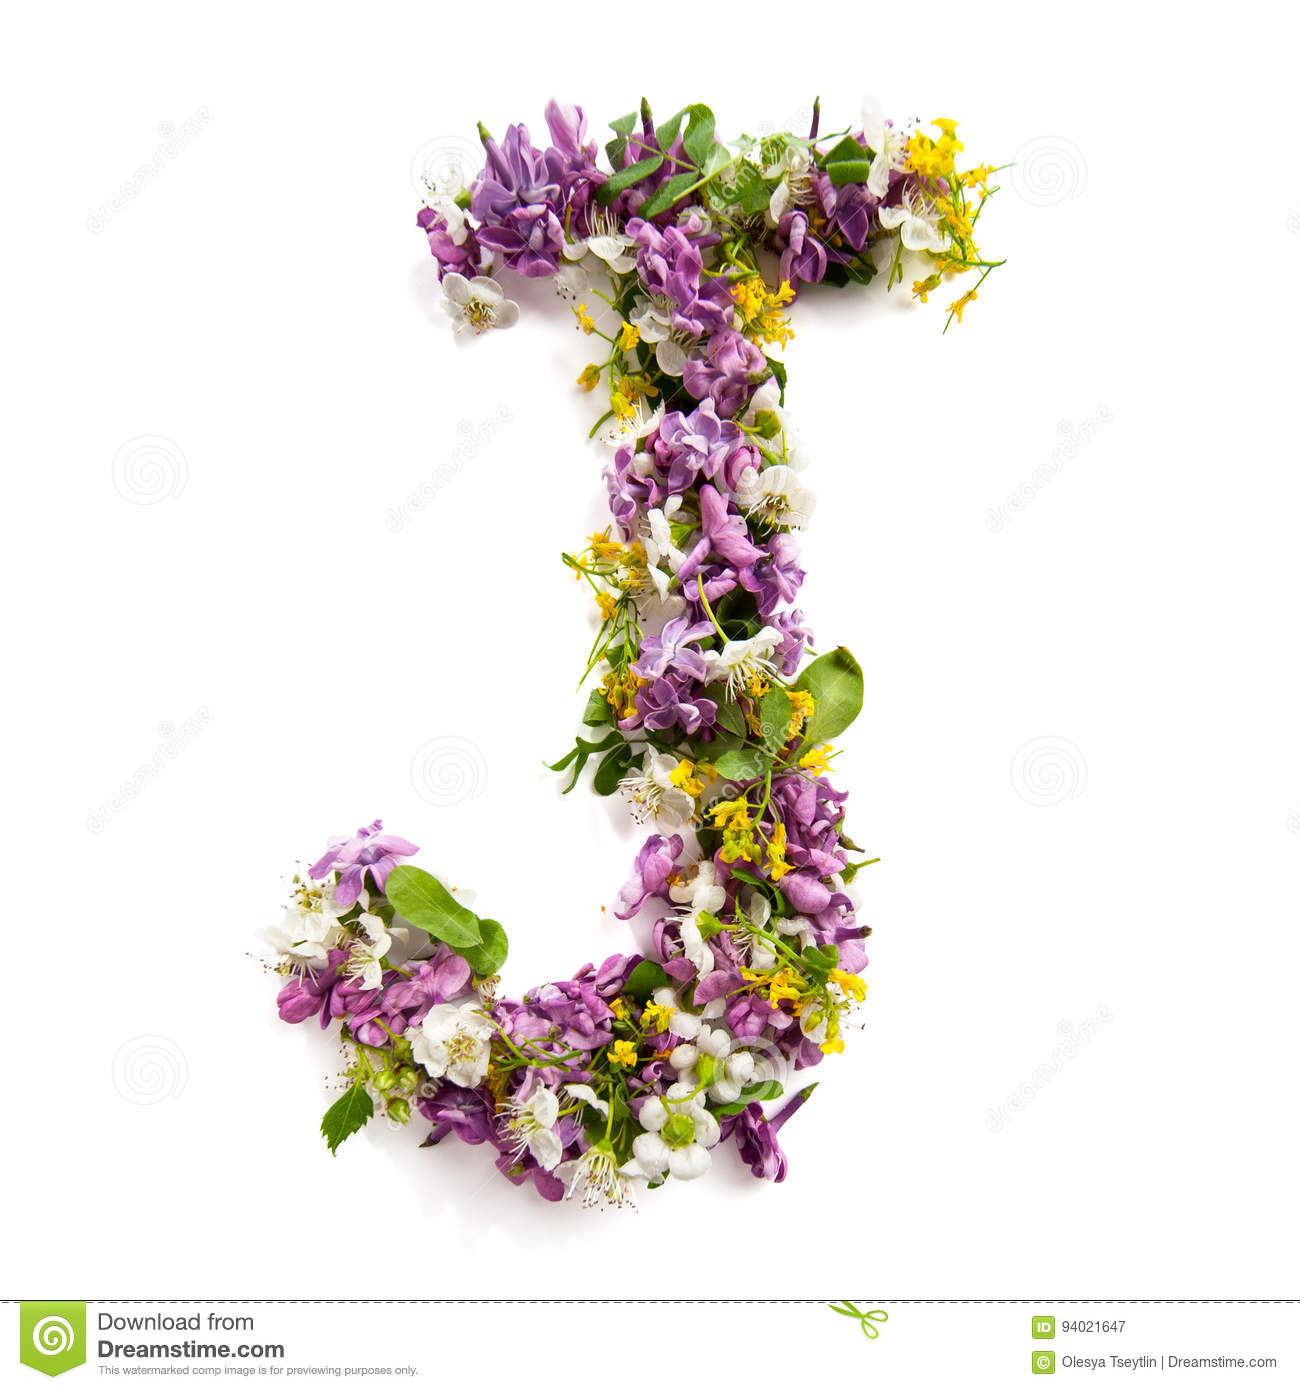 The letter «J» made of various natural small flowers.